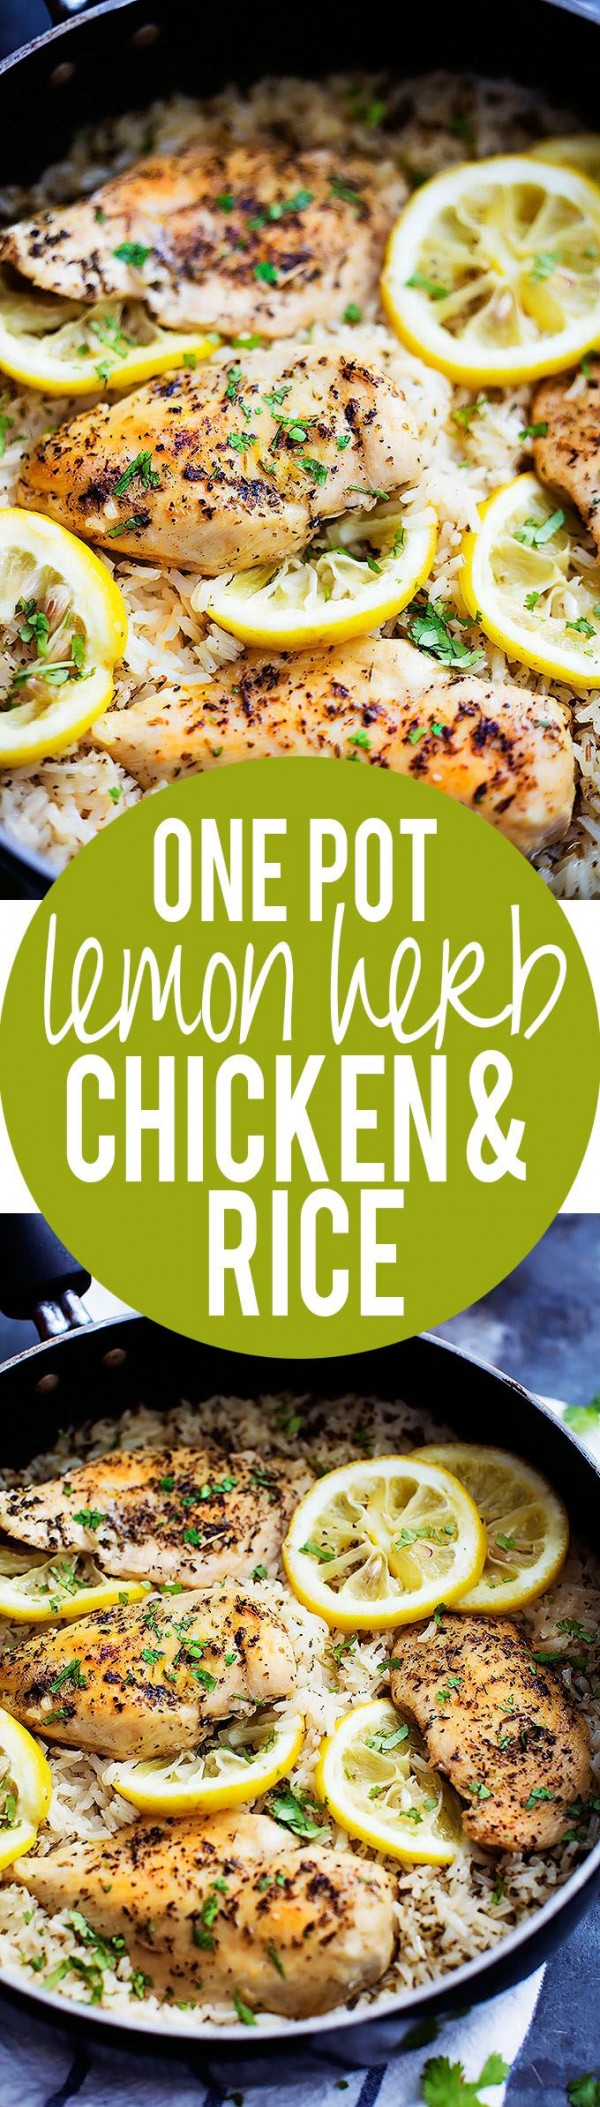 Get the recipe Lemon Herb Chicken and Rice @recipes_to_go